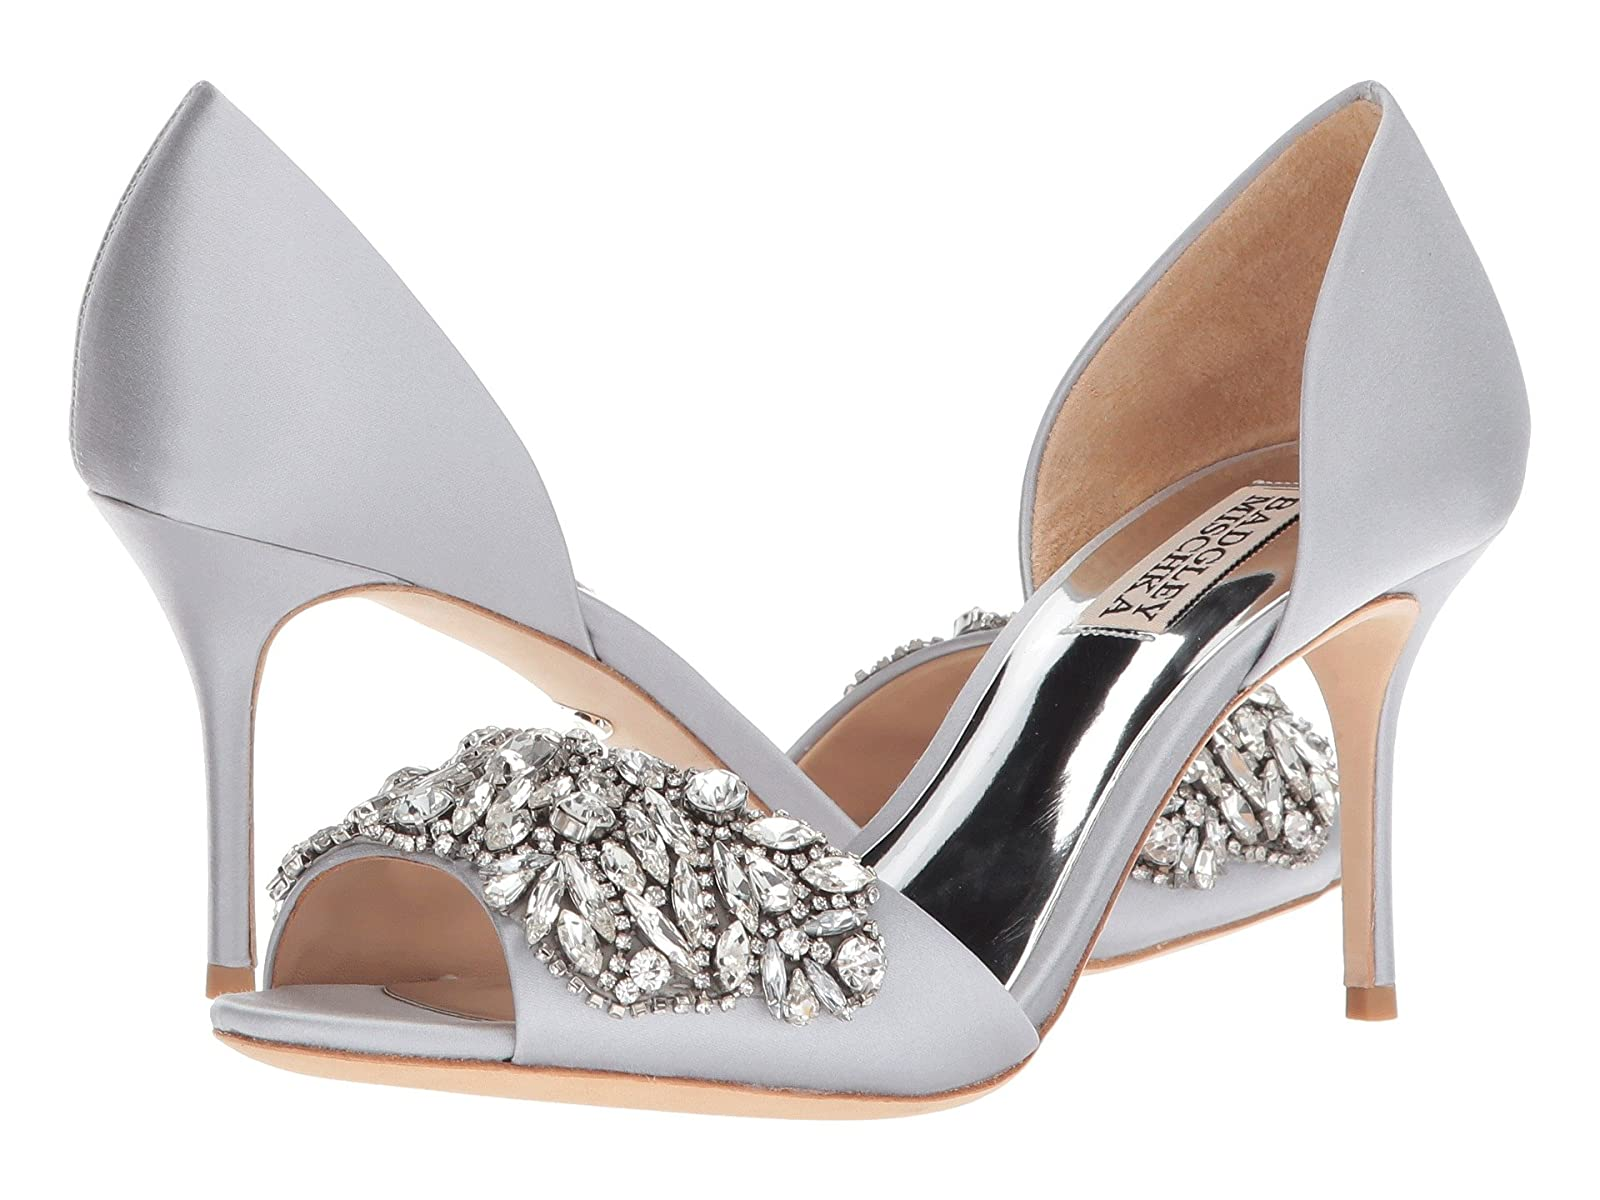 Badgley Mischka HansenCheap and distinctive eye-catching shoes